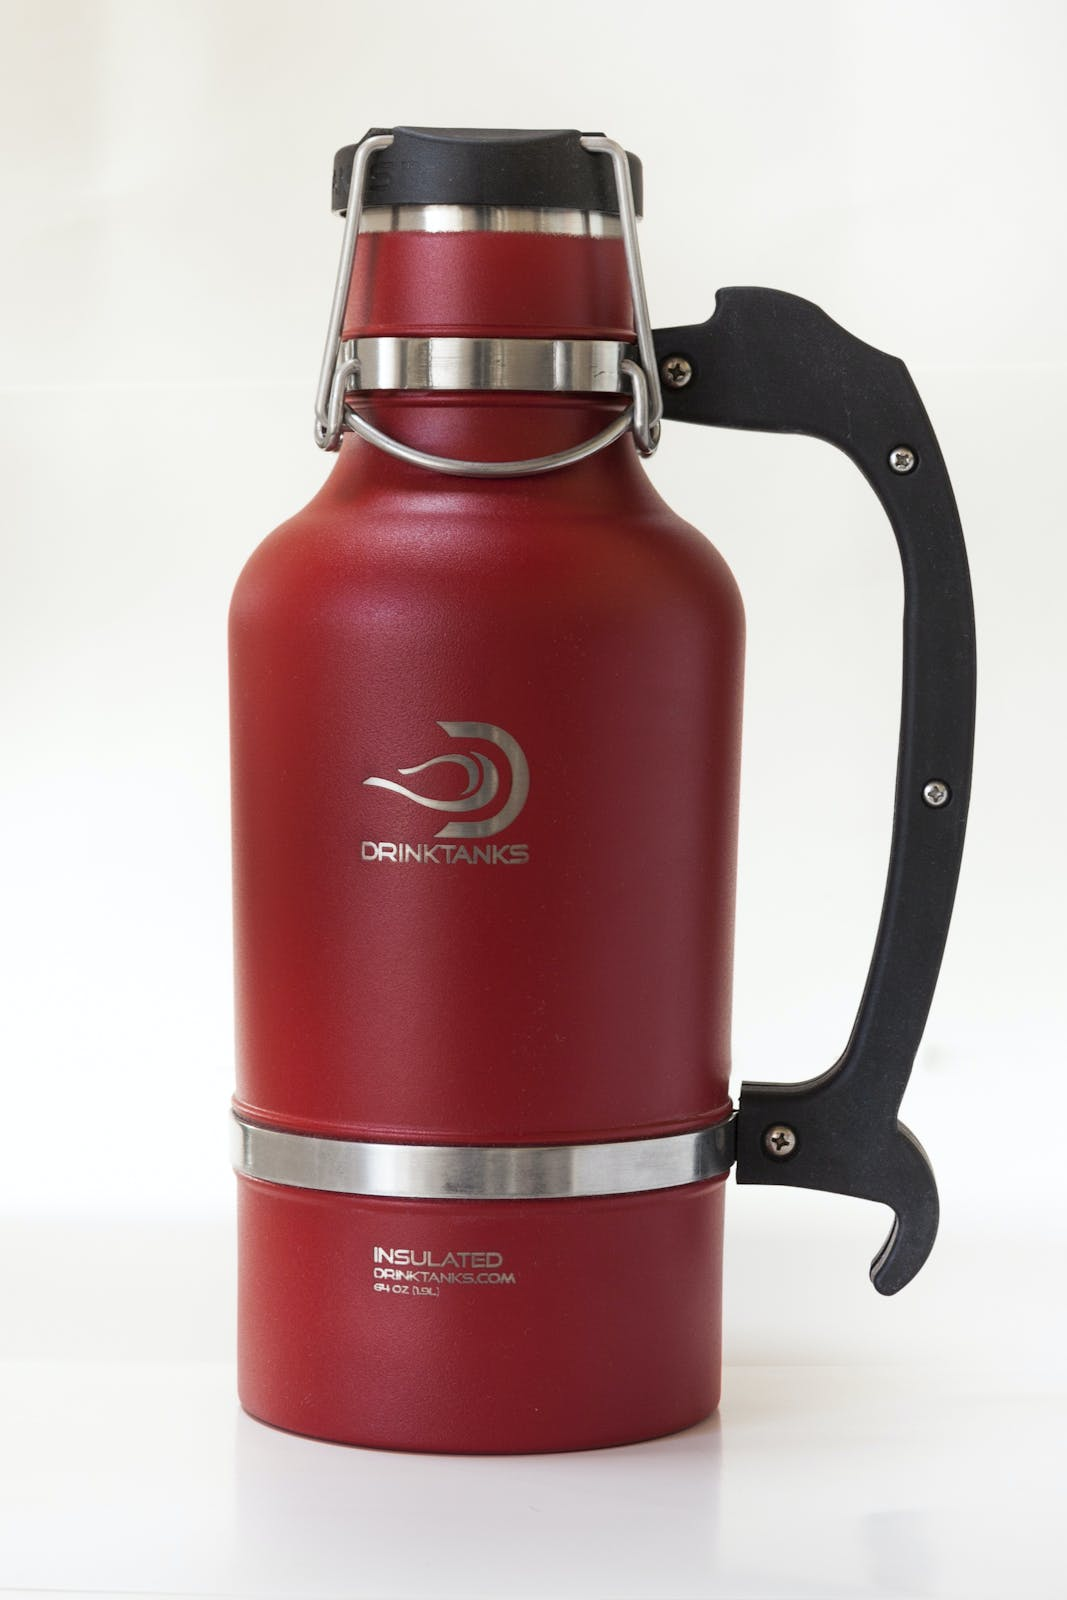 Drink Tanks Growler - Enjoy beer exactly as it was intended. Cold. Fresh. Carbonated. - 64oz Capacity (Red) Growler sold by Drink Tanks